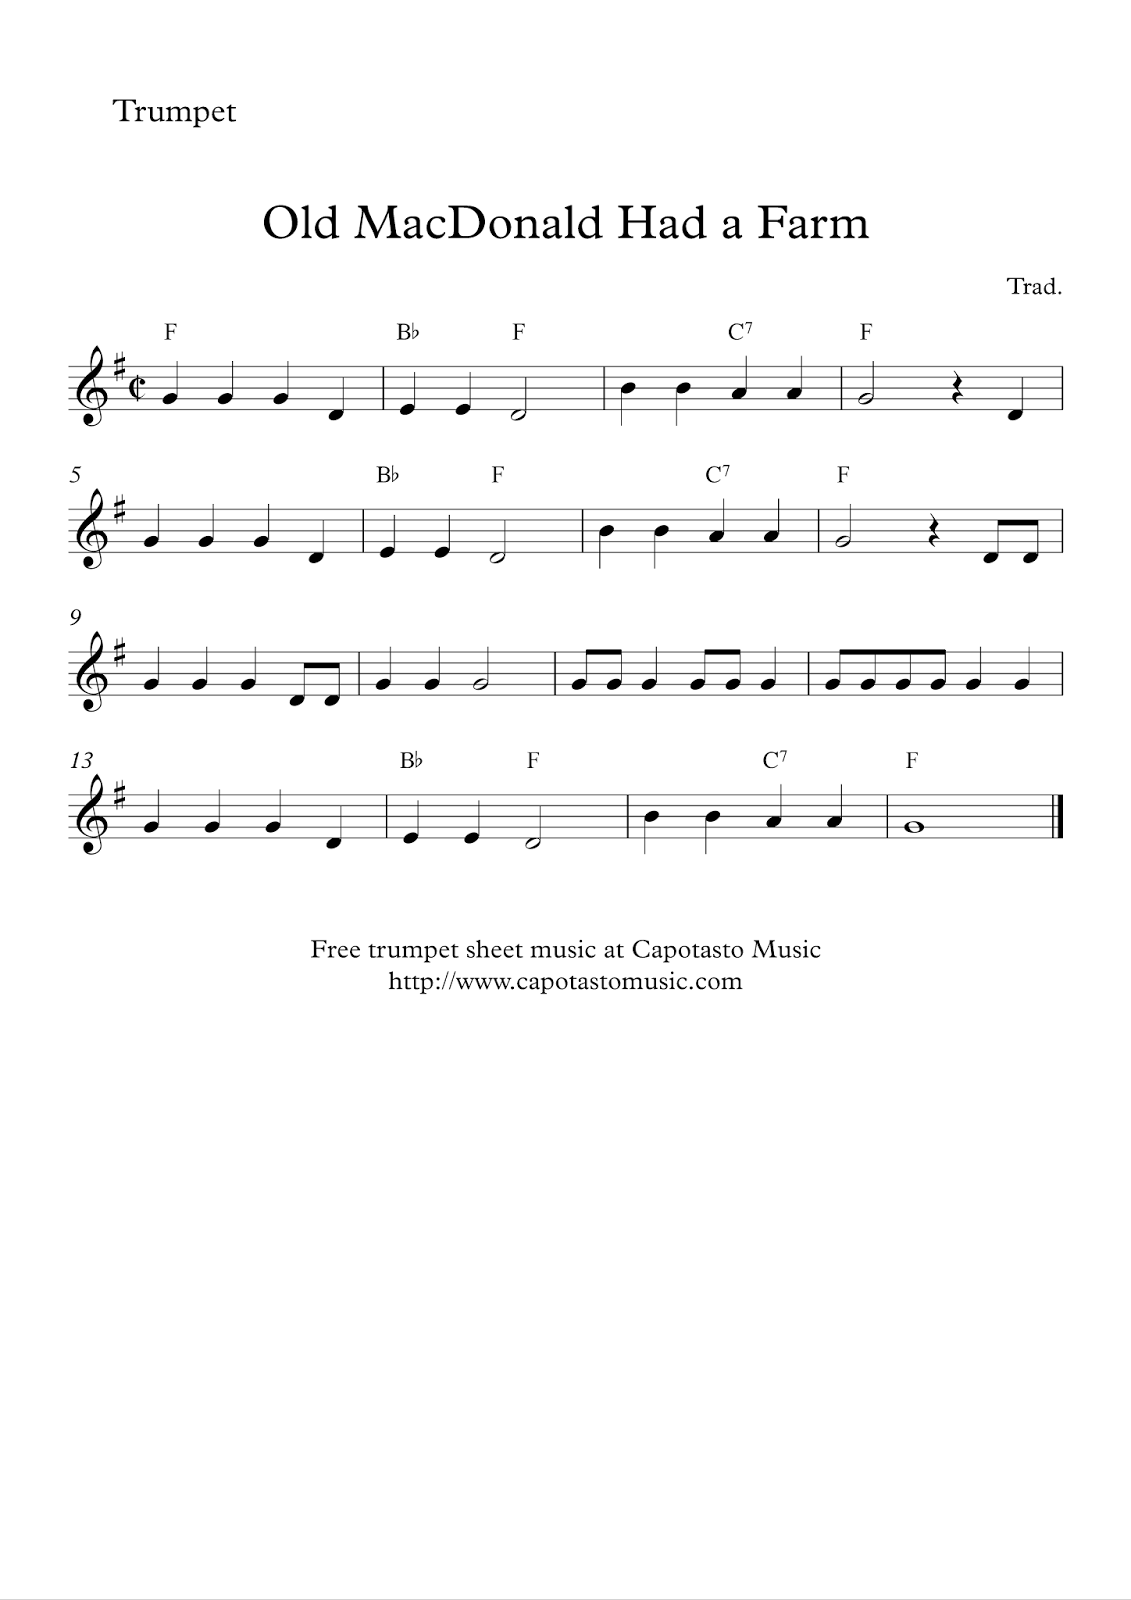 Free Sheet Music Scores: Free easy trumpet sheet music - Old MacDonald ...